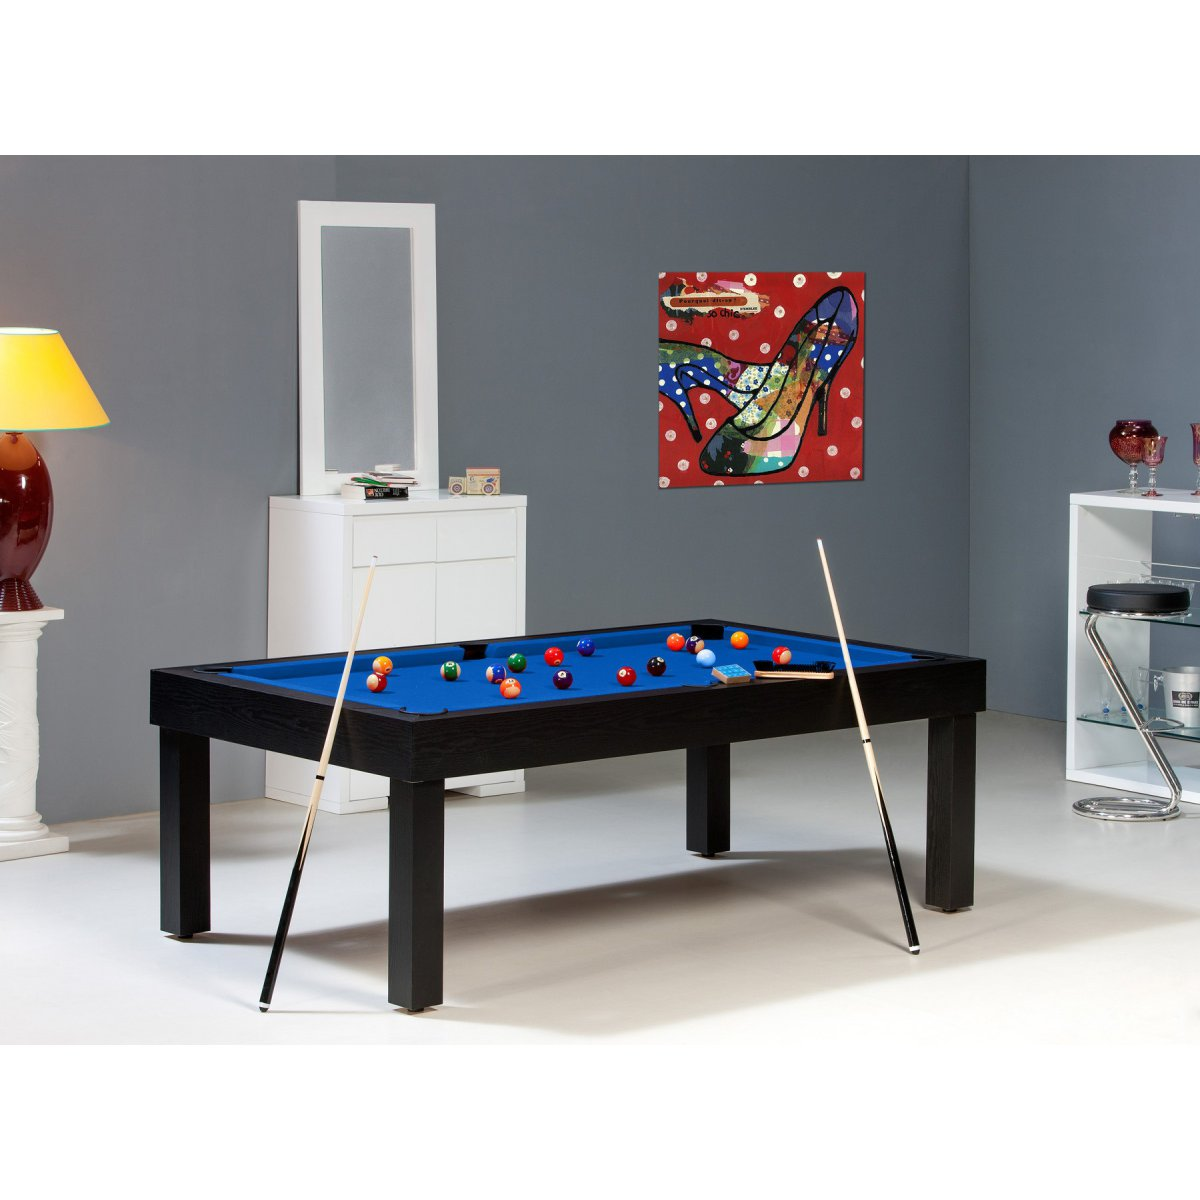 Billard table americain - Billards de France